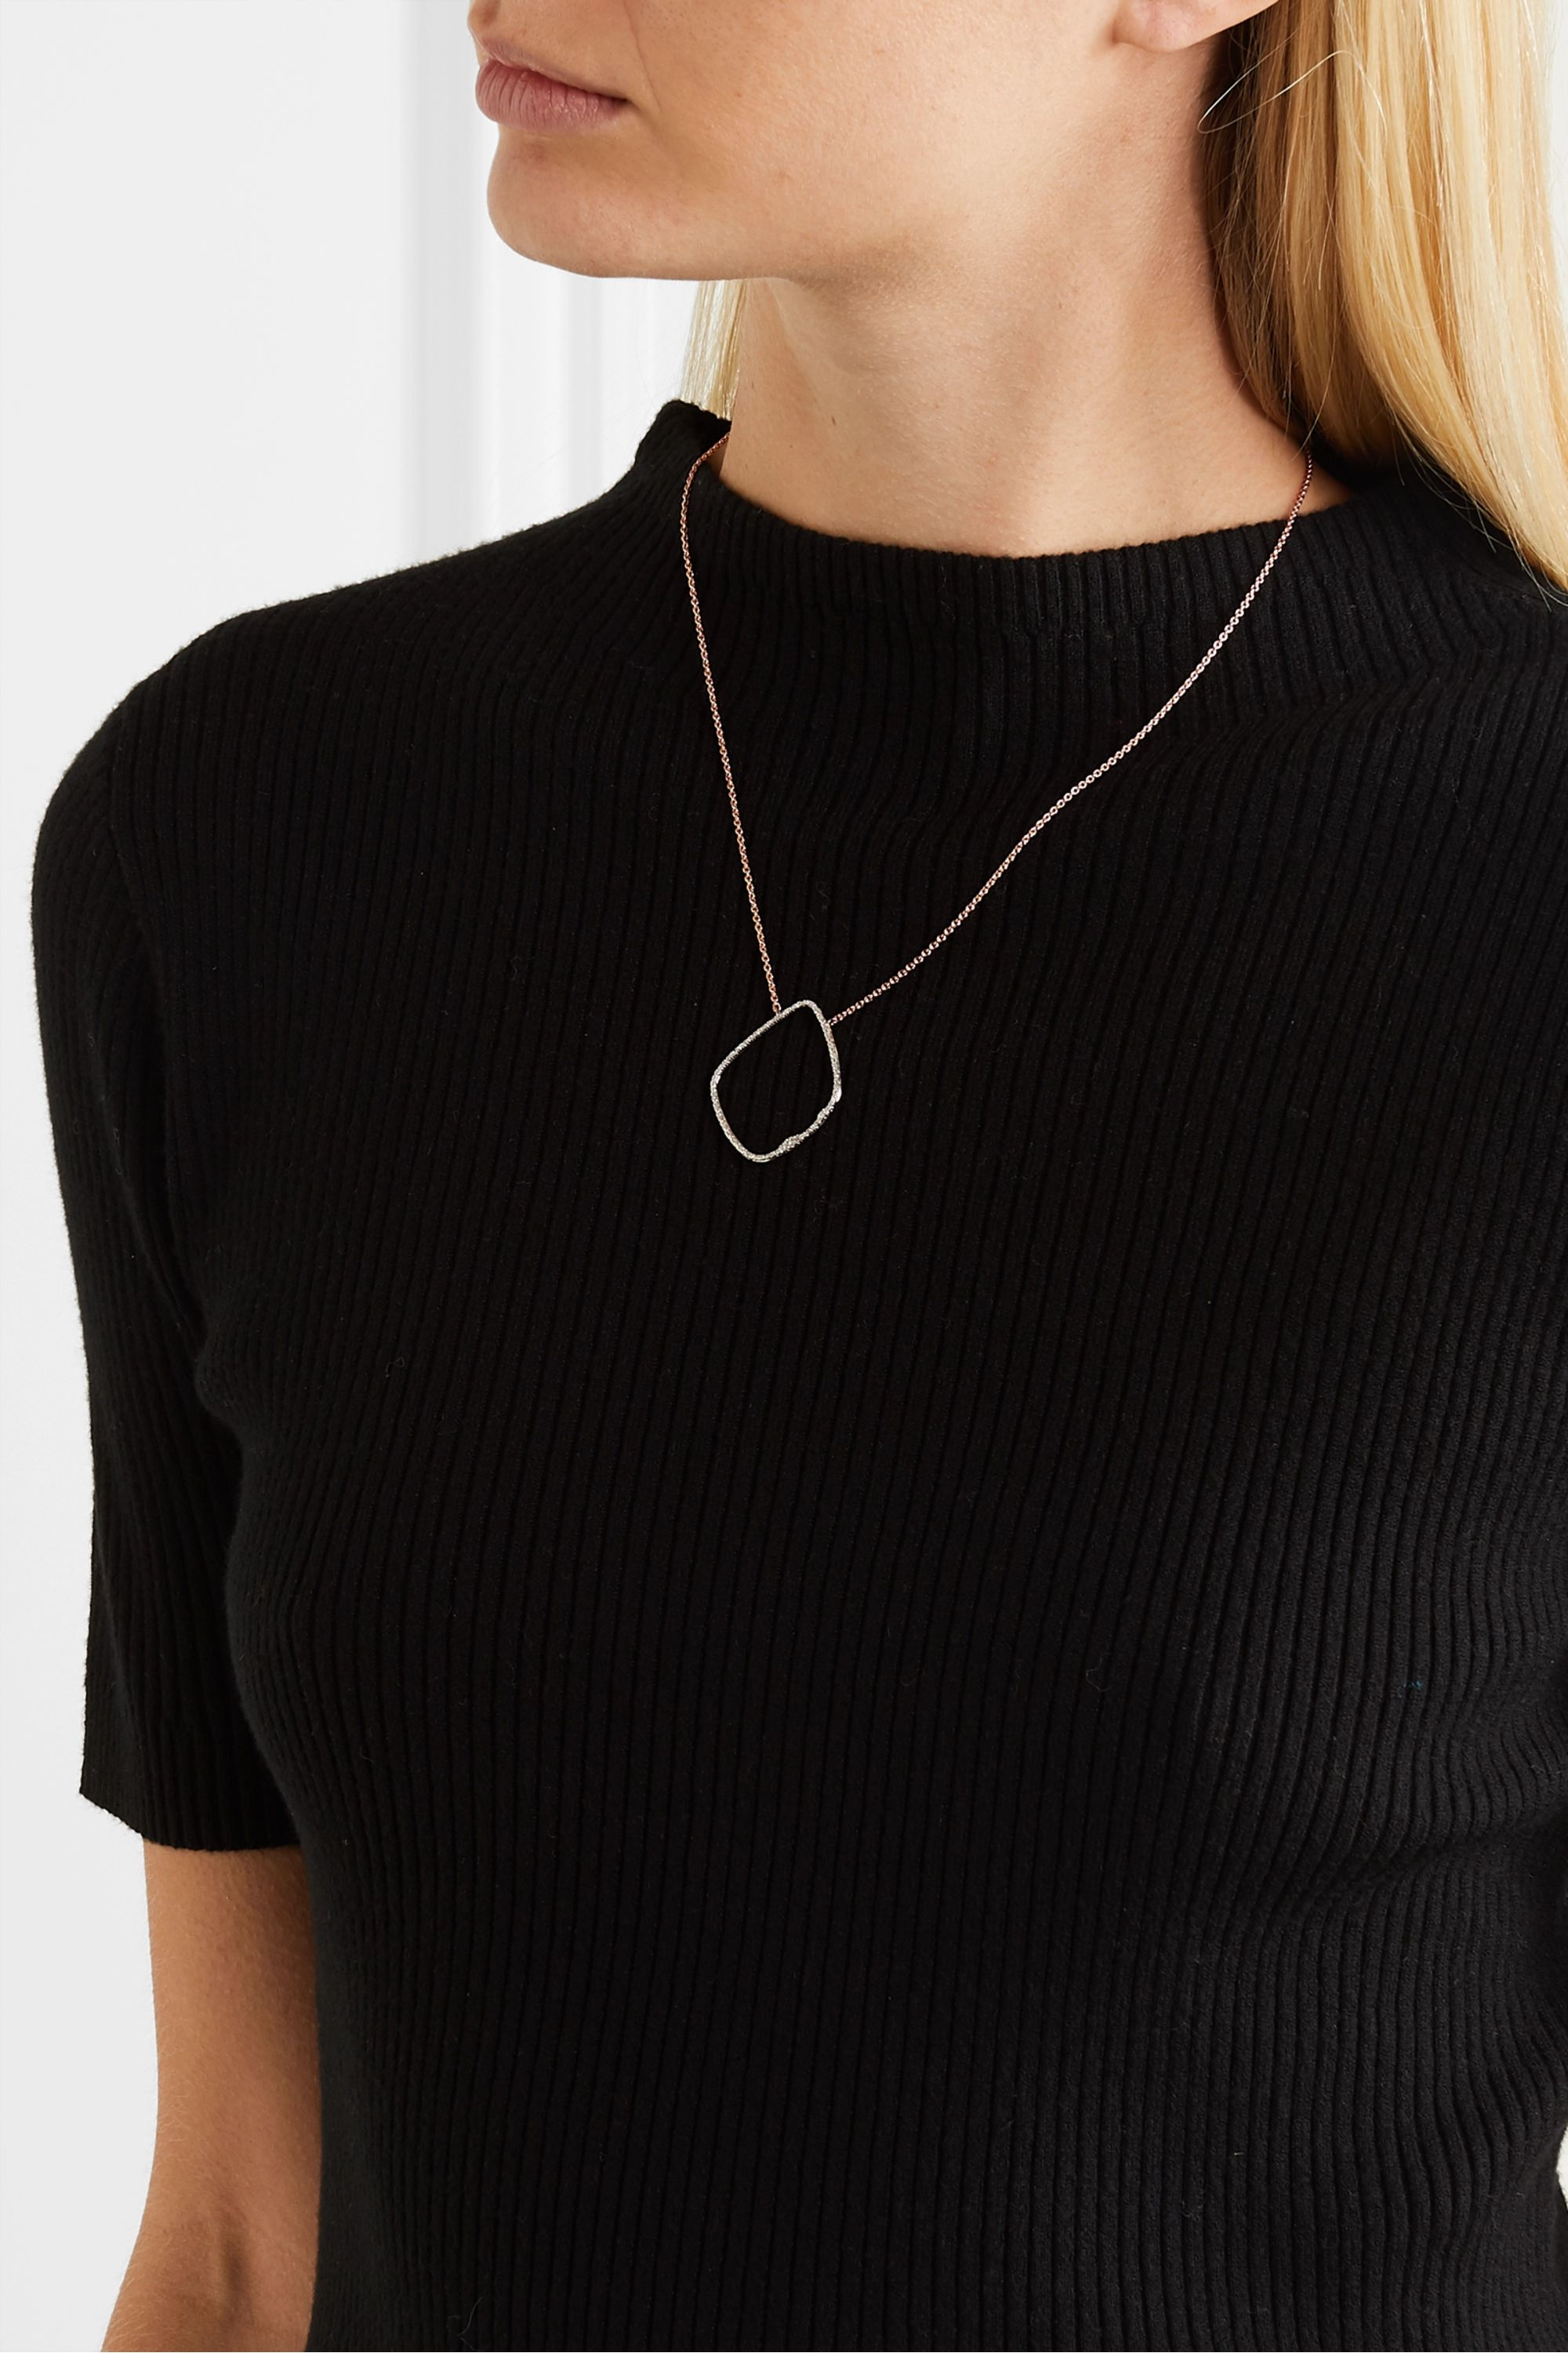 Monica Vinader Riva Hoop rose gold vermeil and sterling silver diamond necklace